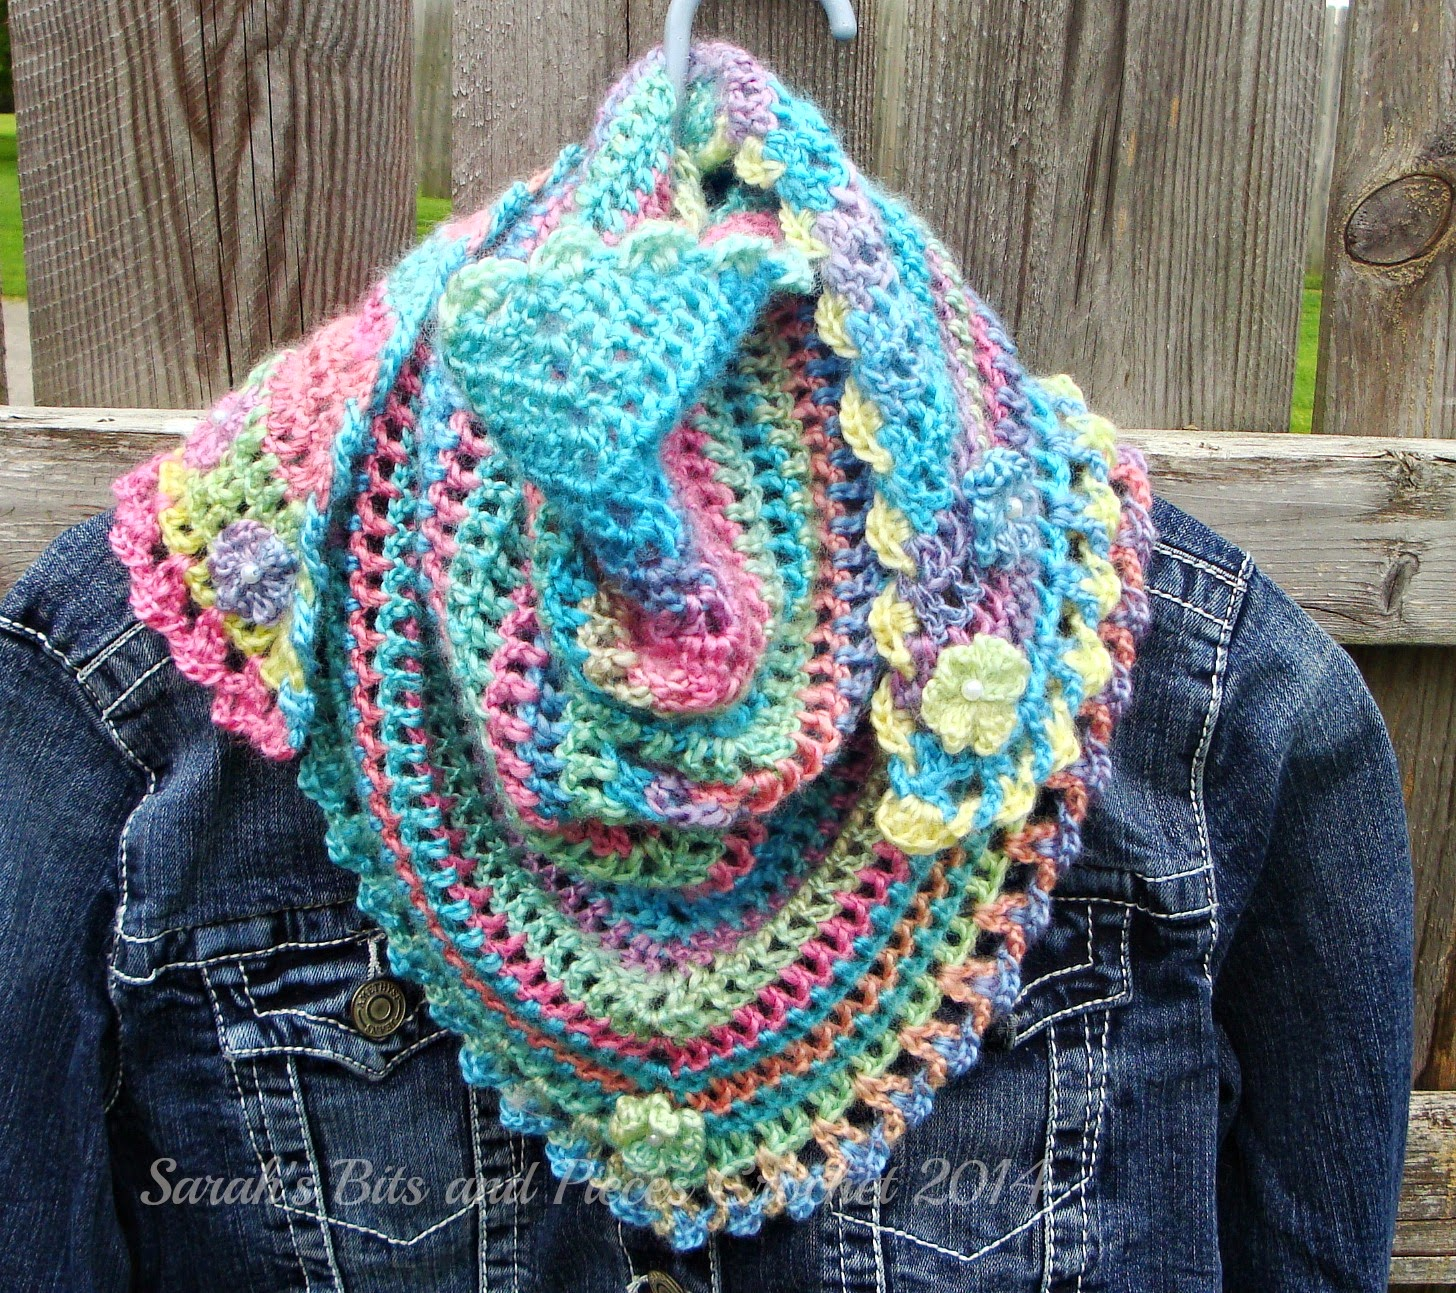 Sarah\'s Bits and Pieces Crochet: Road Trip Scarf